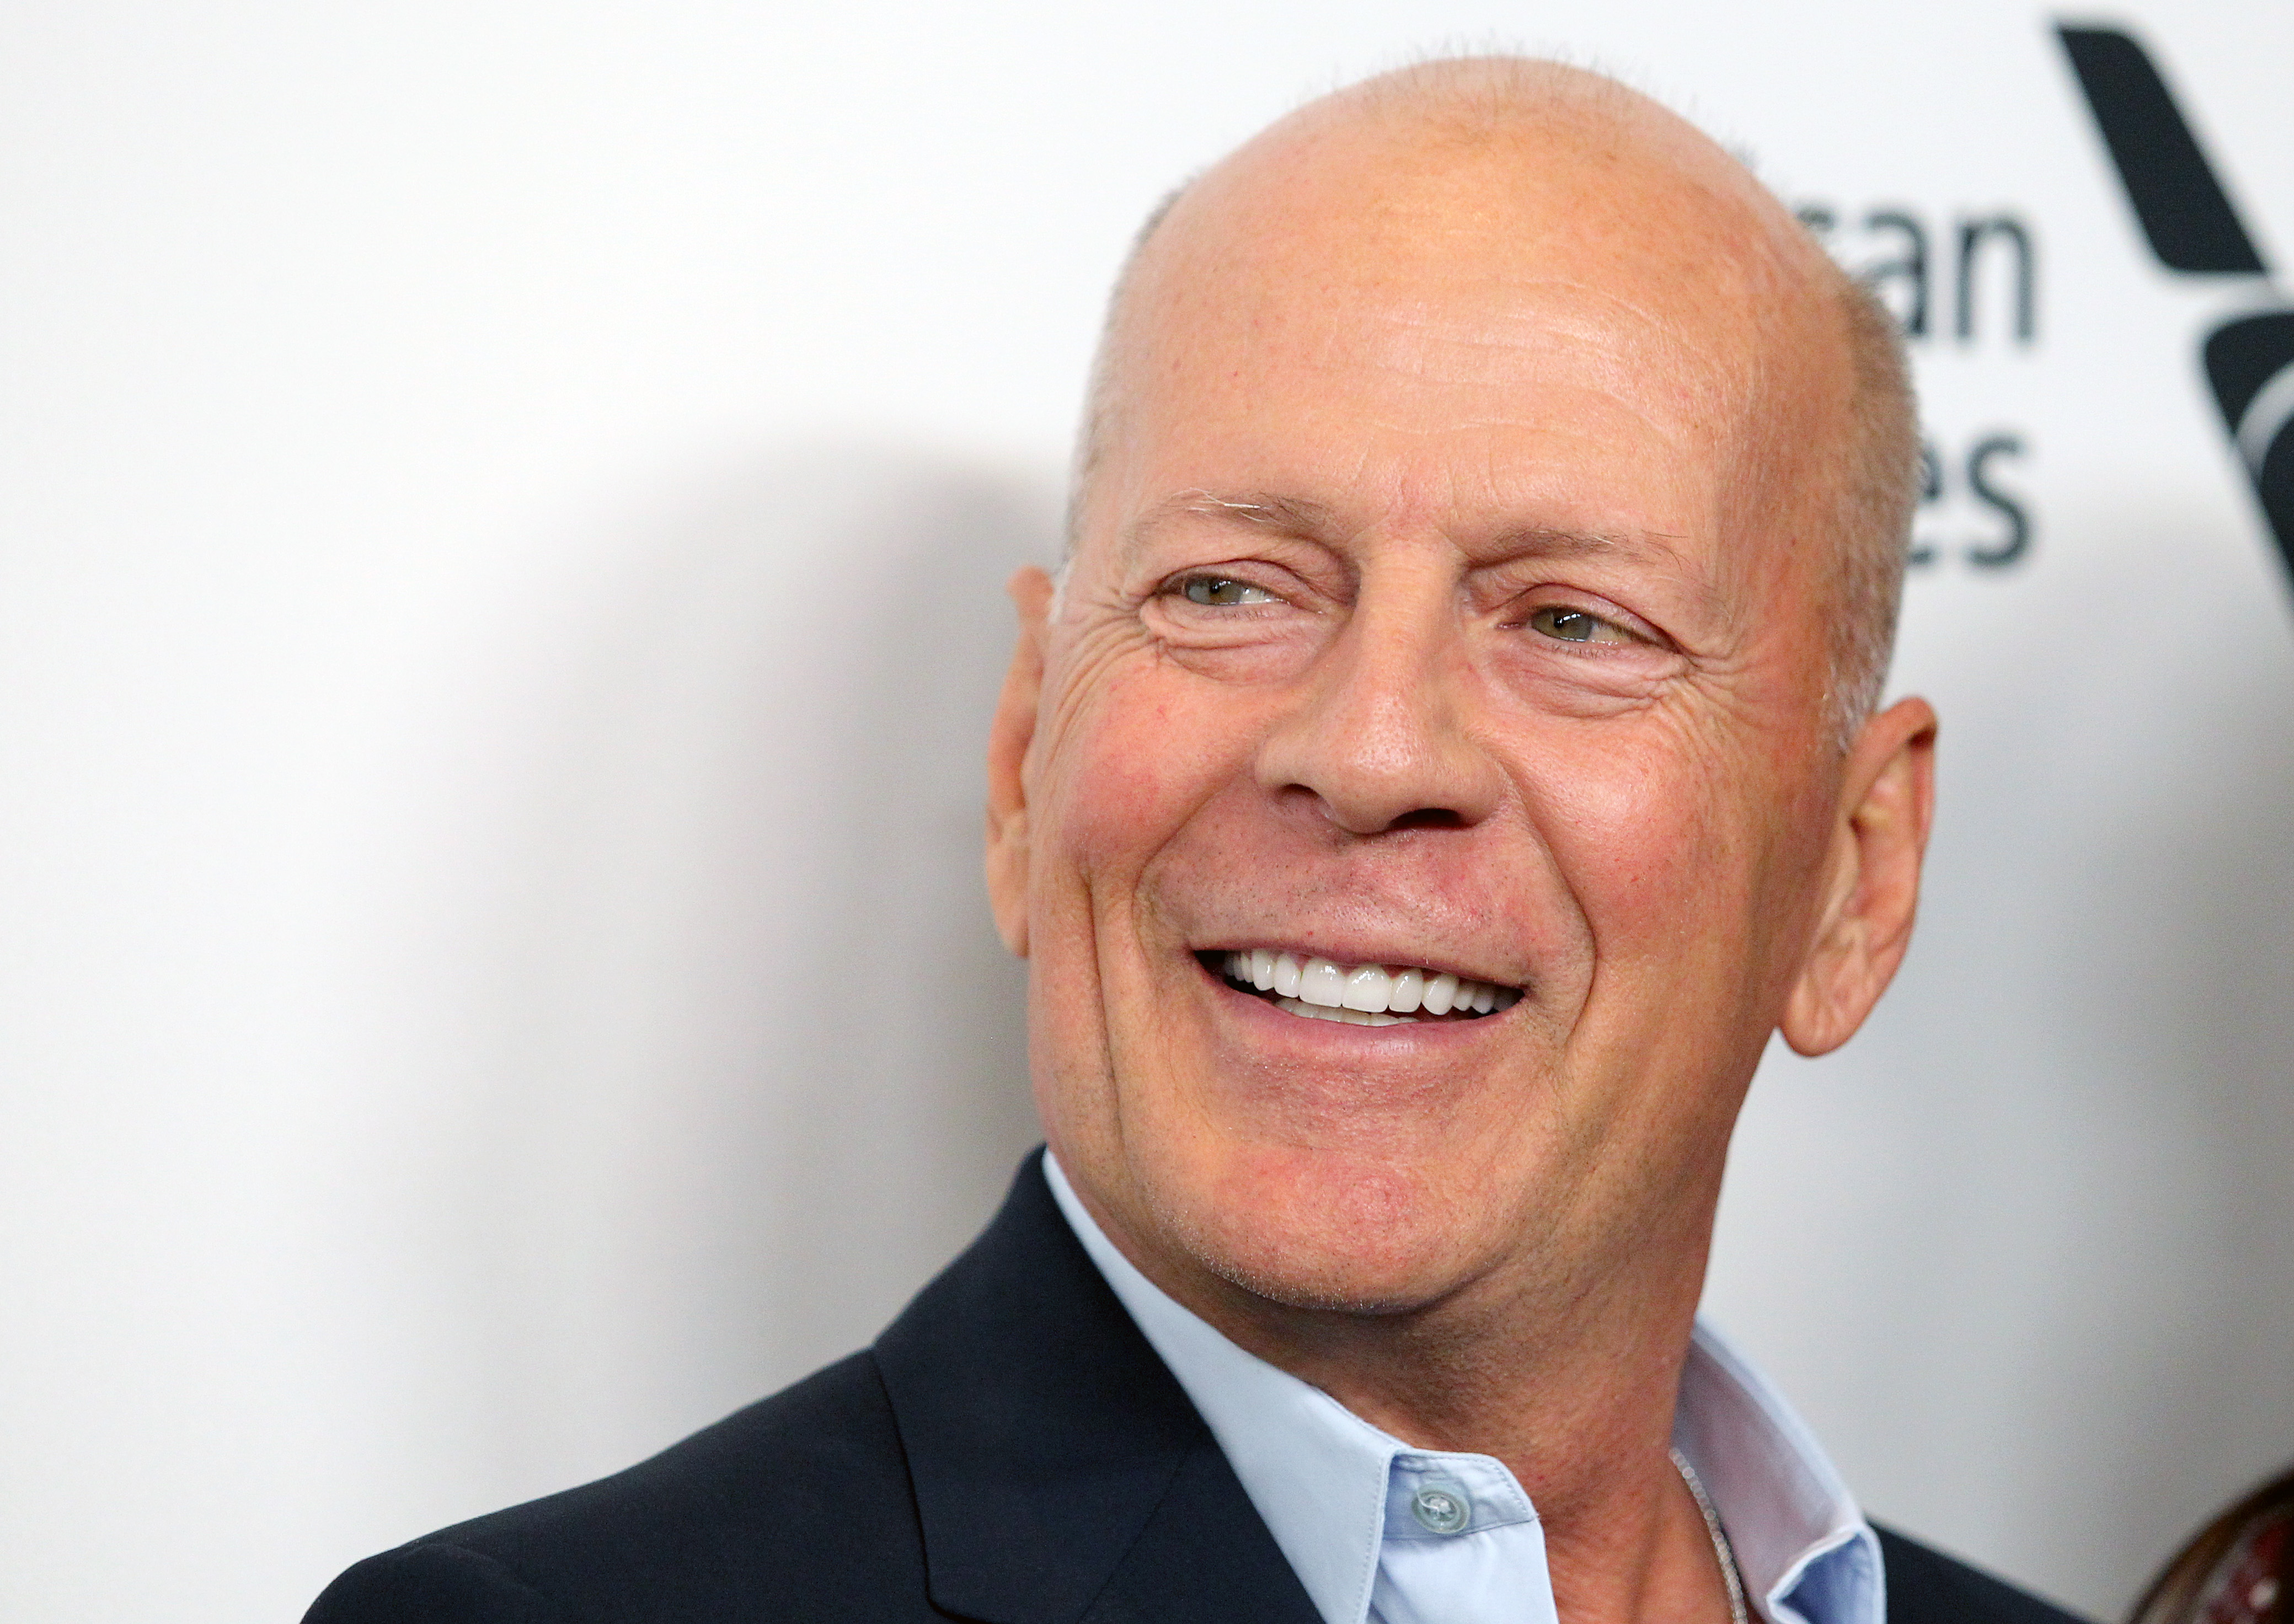 """NEW YORK, NEW YORK - OCTOBER 11: Actor Bruce Willis attends the """"Motherless Brooklyn"""" premiere during the 57th New York Film Festival on October 11, 2019 in New York City. (Photo by Jim Spellman/WireImage)"""